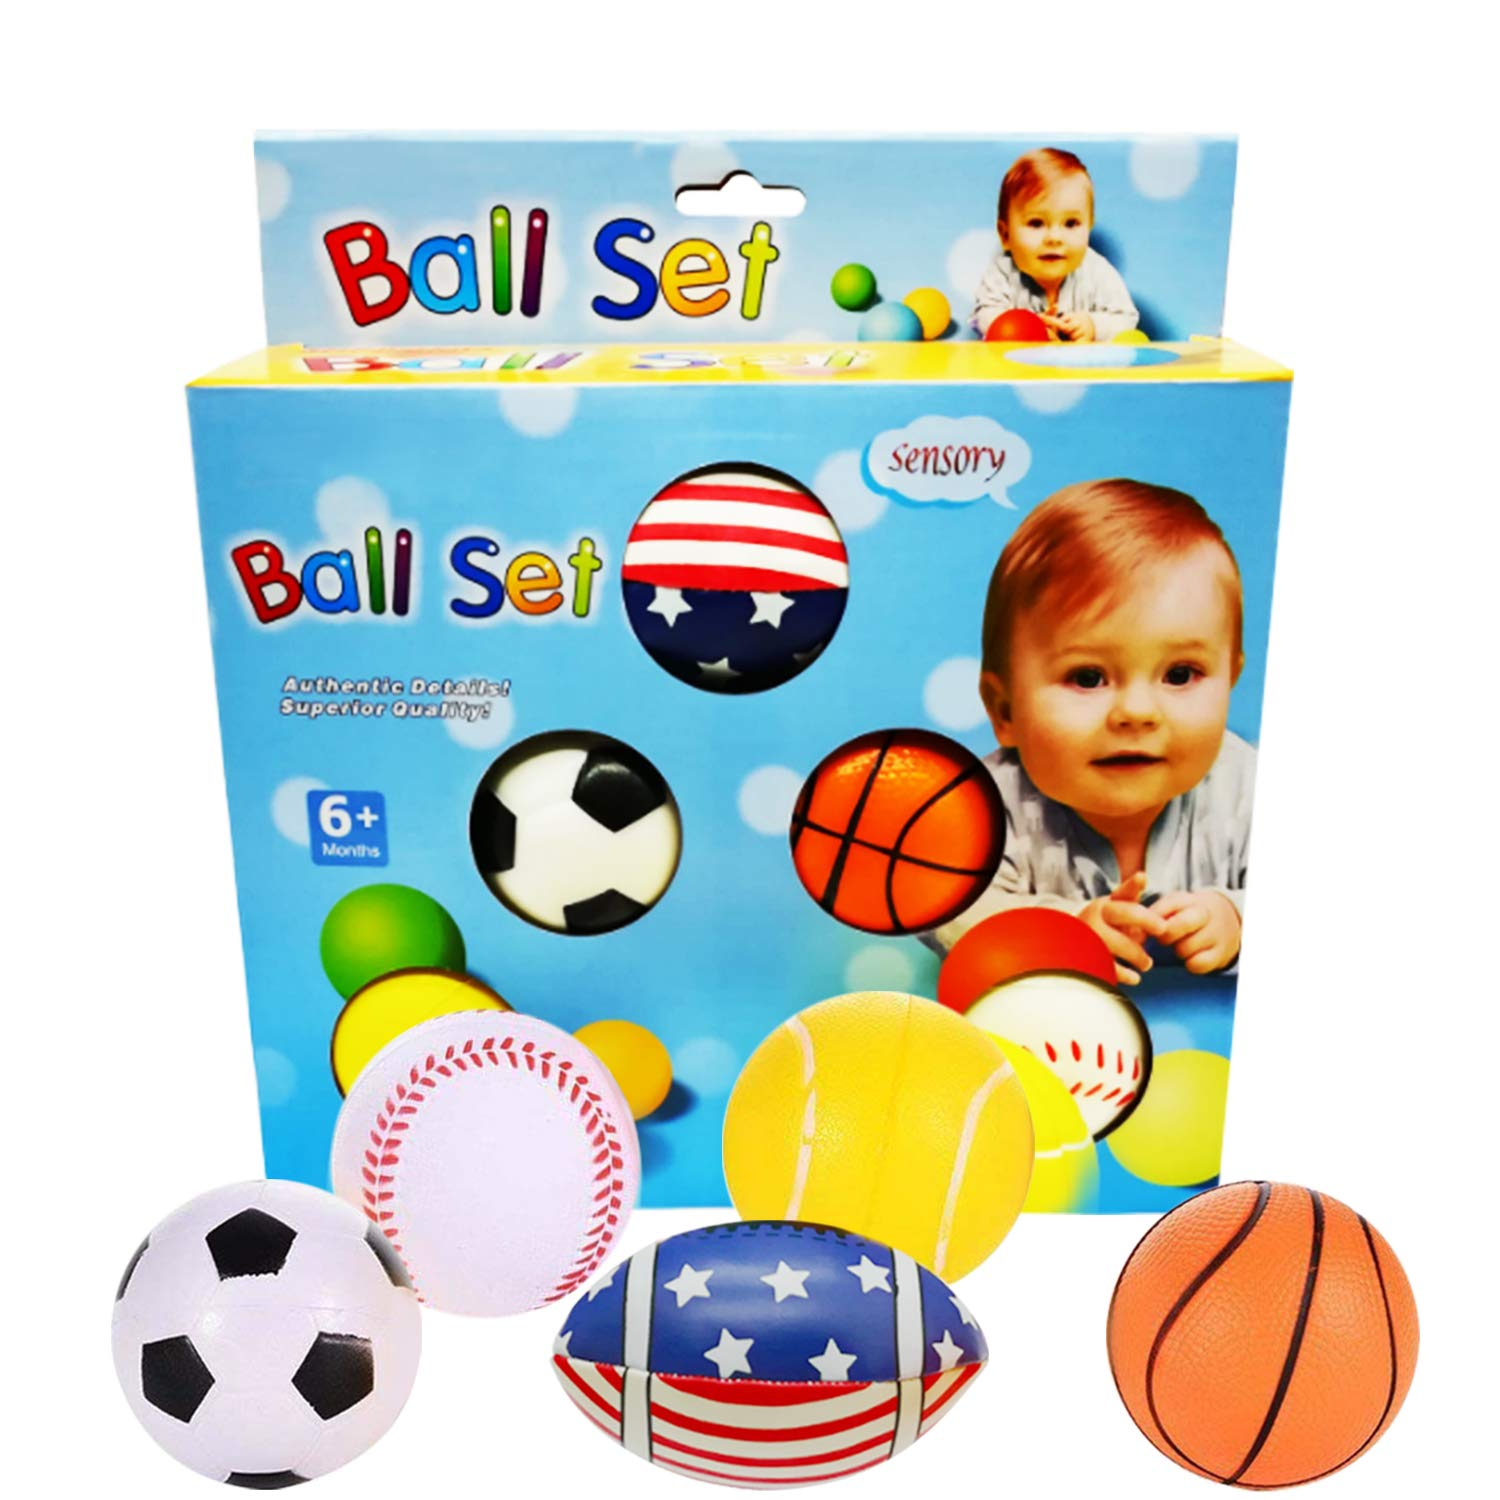 Set of 5 Sports Balls Mini Basketball Football Tennis Baseball Soccer Foam Ball Pack Toys Gifts for Kids Toddlers Baby 18 Months and Up